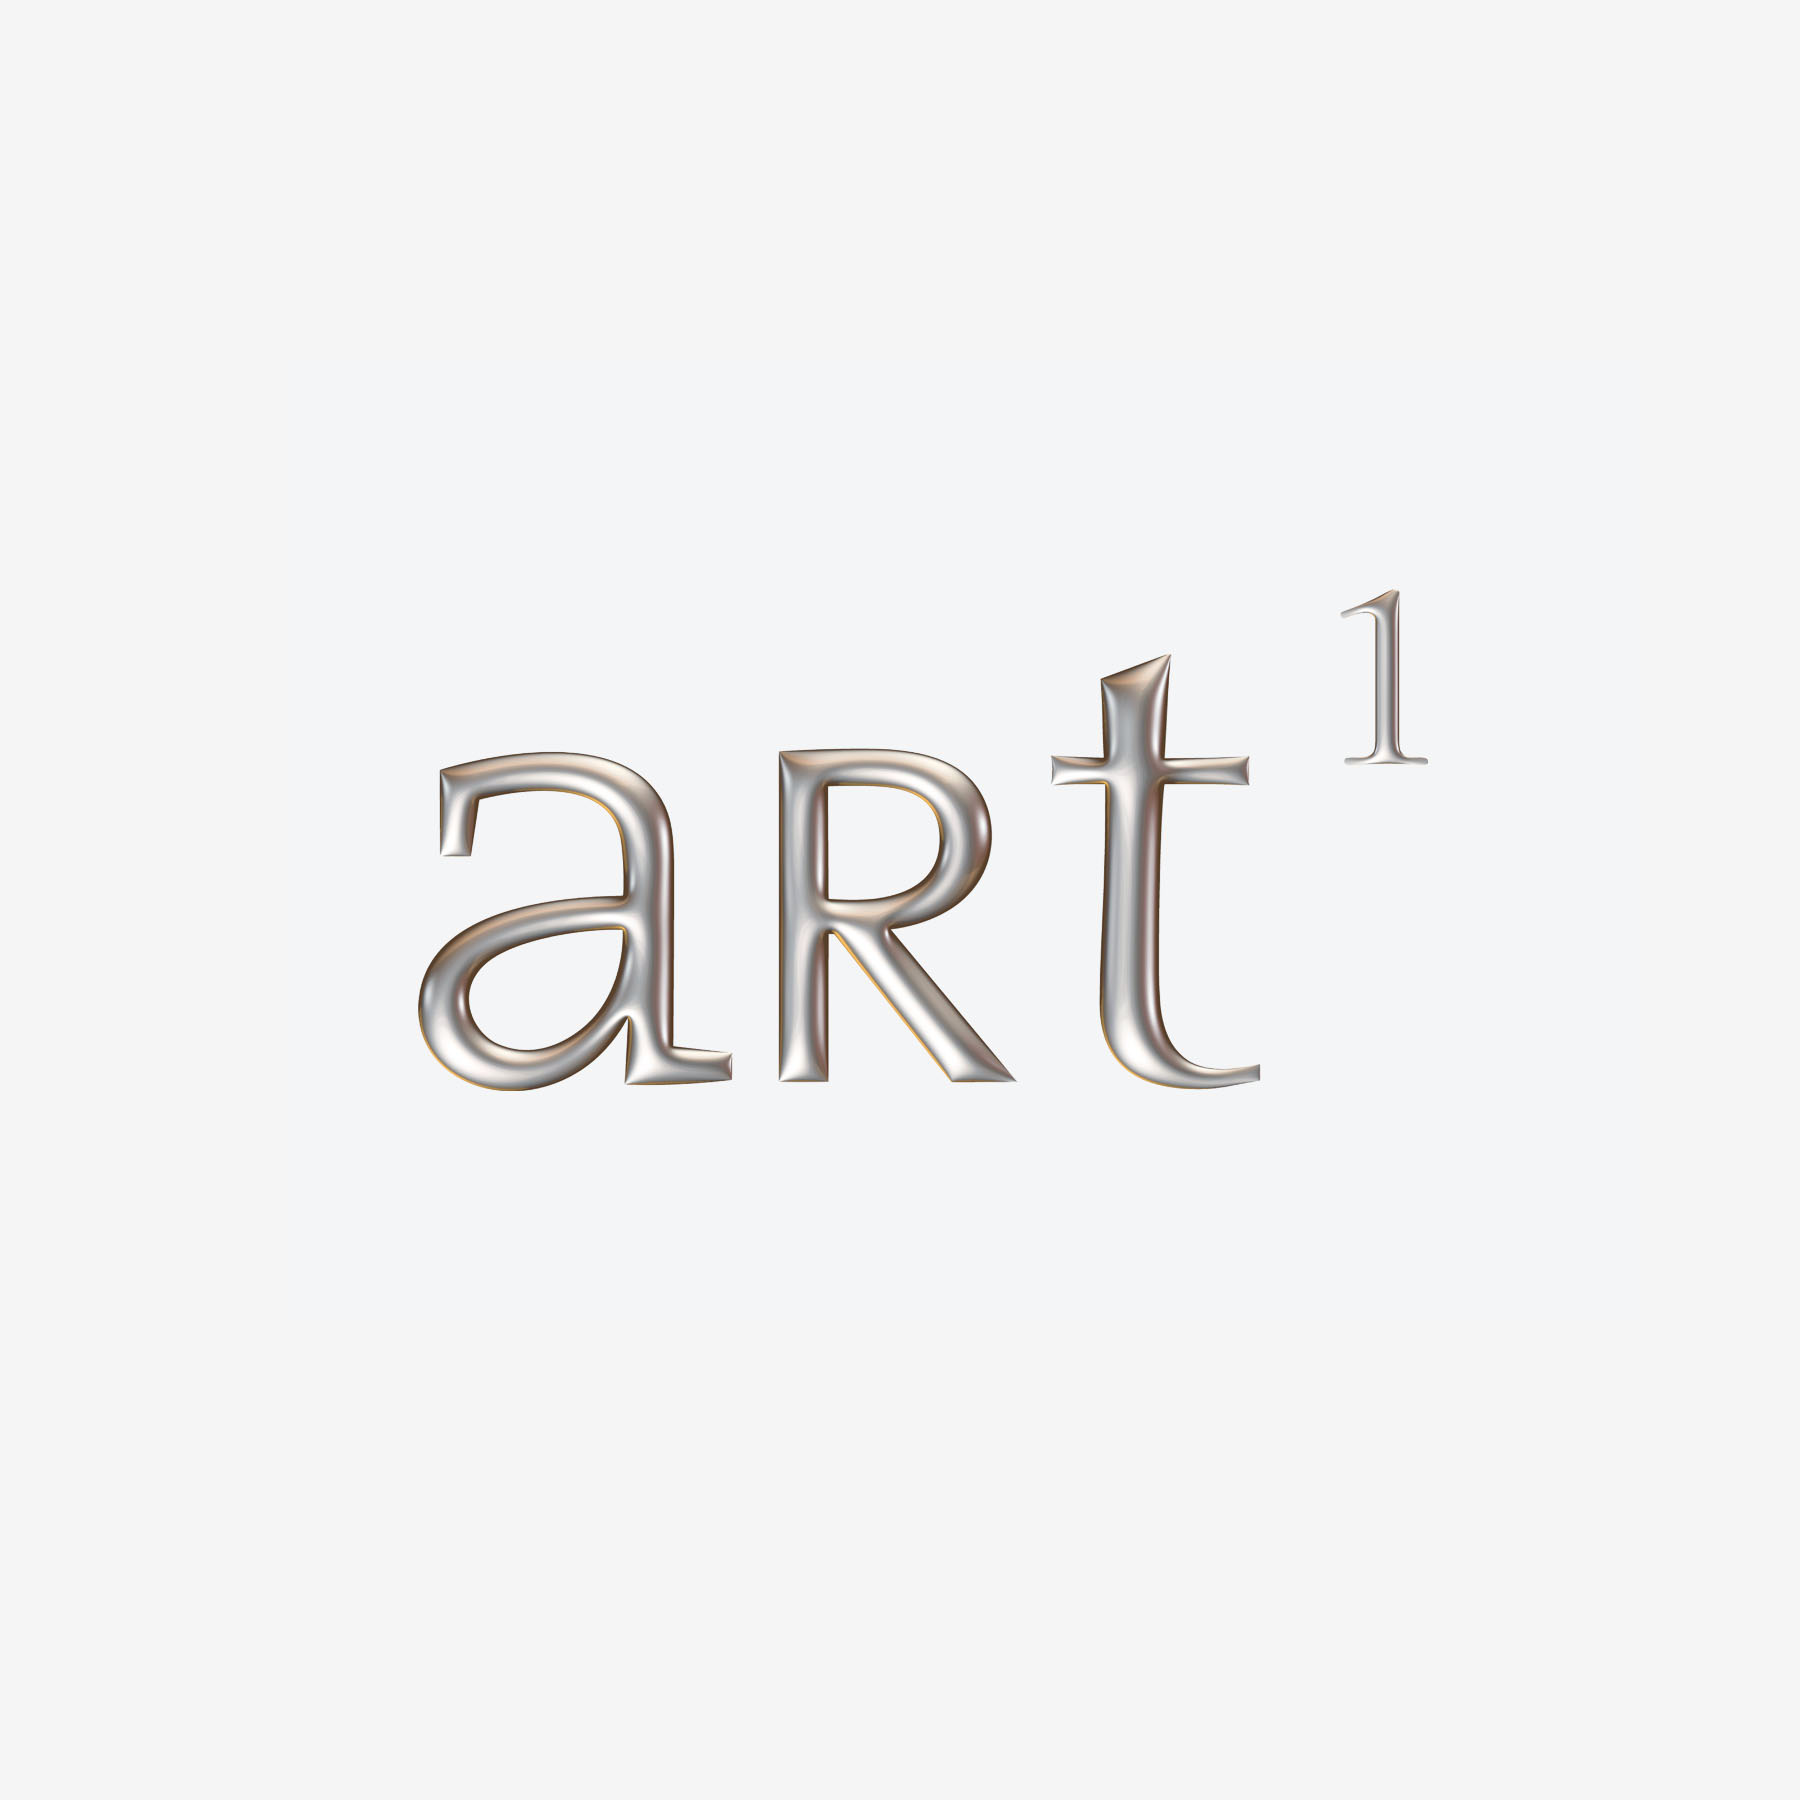 Art 1 - An online website for eclectic curated items with an emphasis on art, and also a 1stDibs shop, this logo was a collaboration on the existing logo, by our addition of the 3-dimensional silver effect.